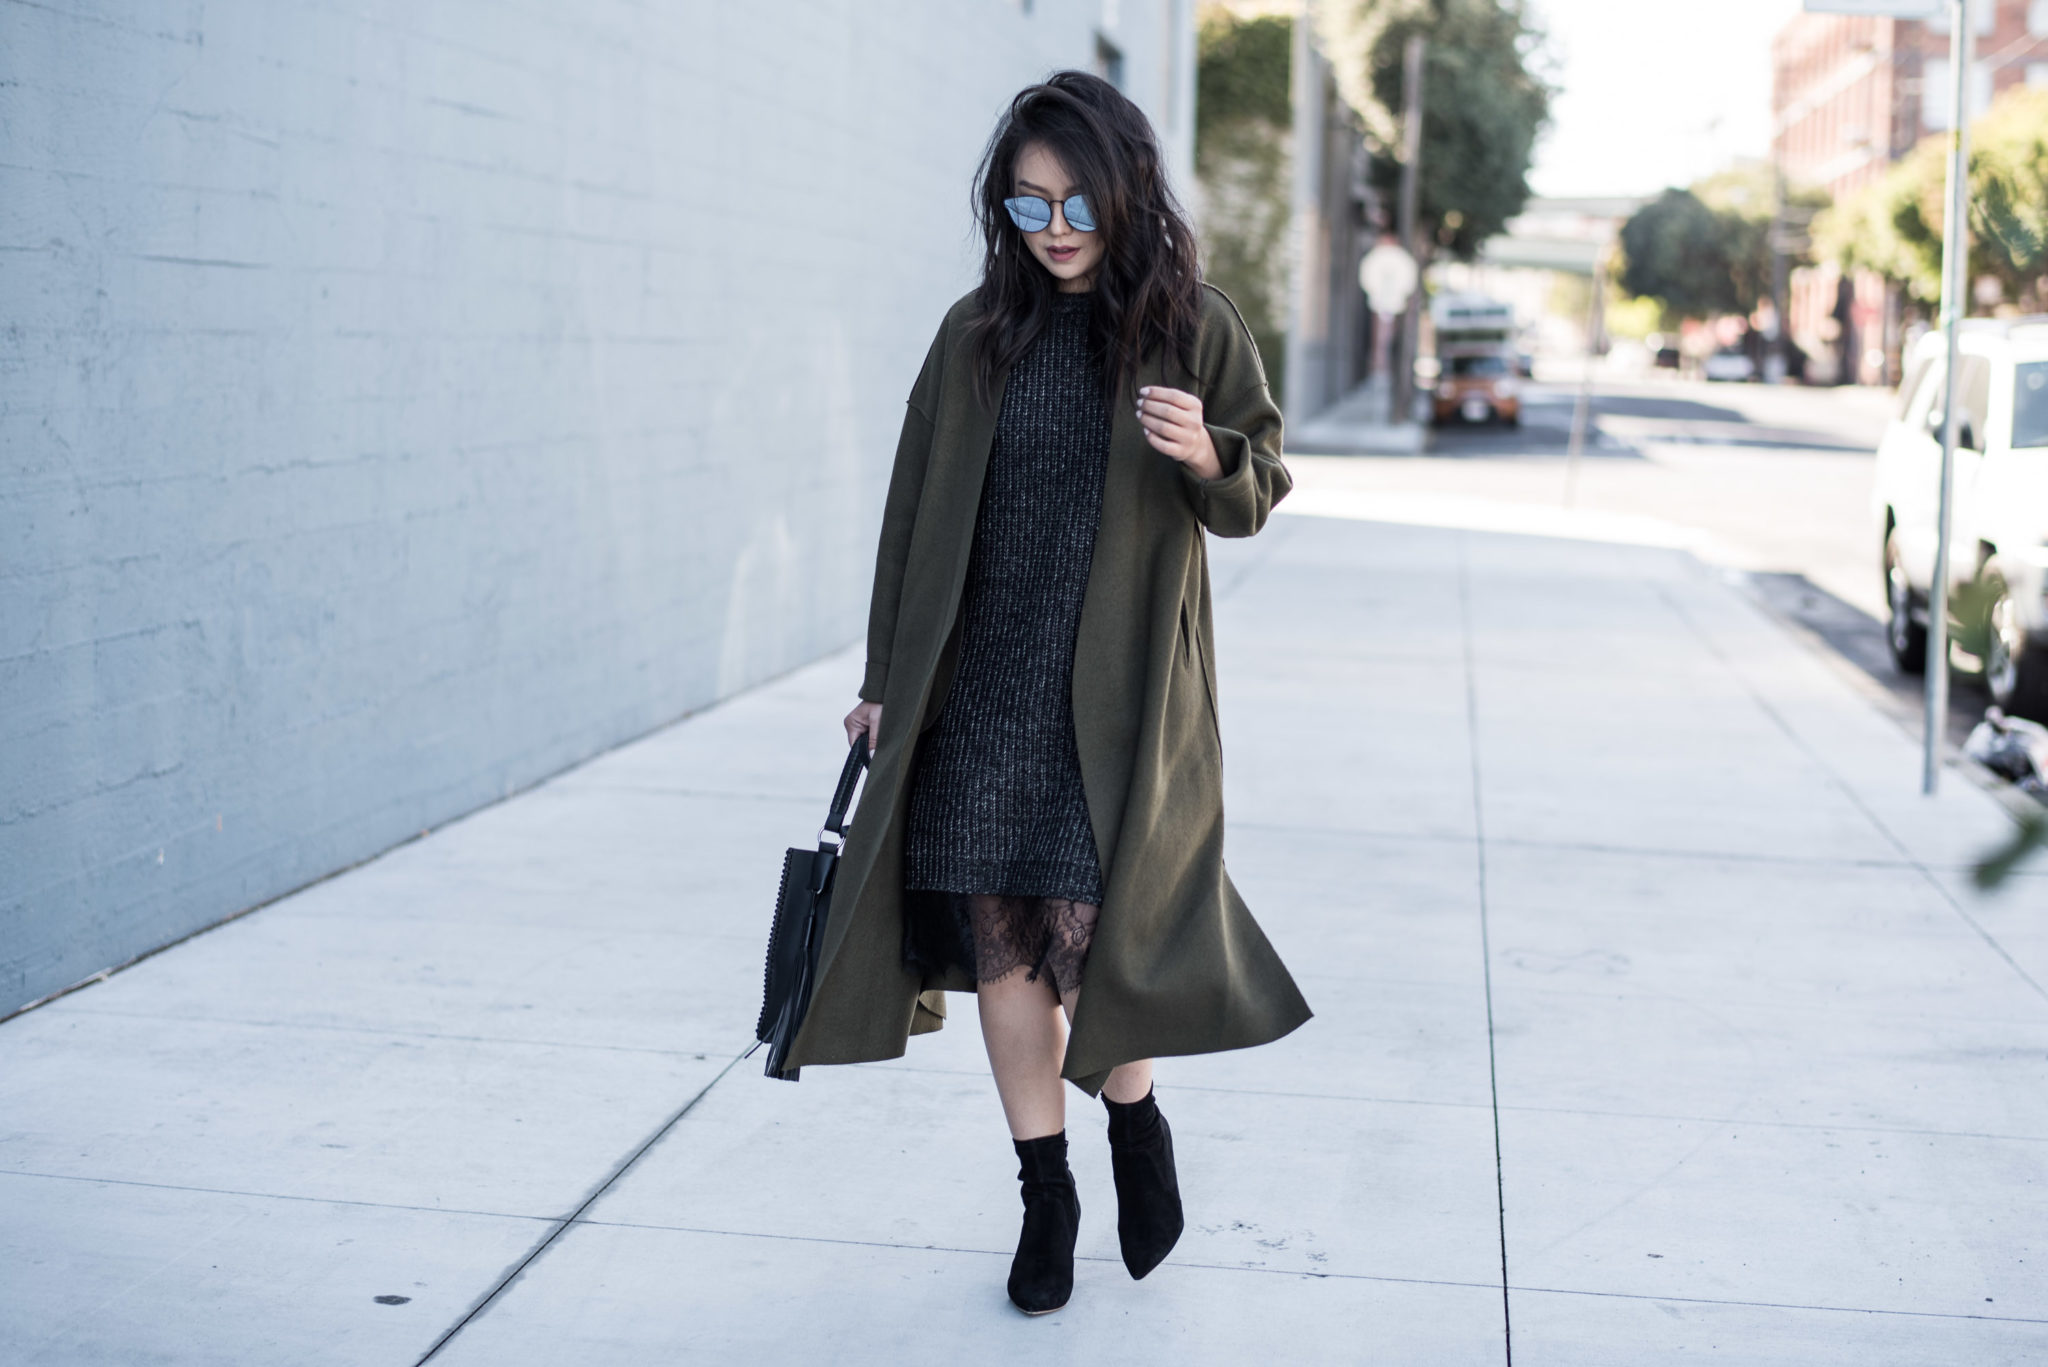 #OOTD: Sweater Dress